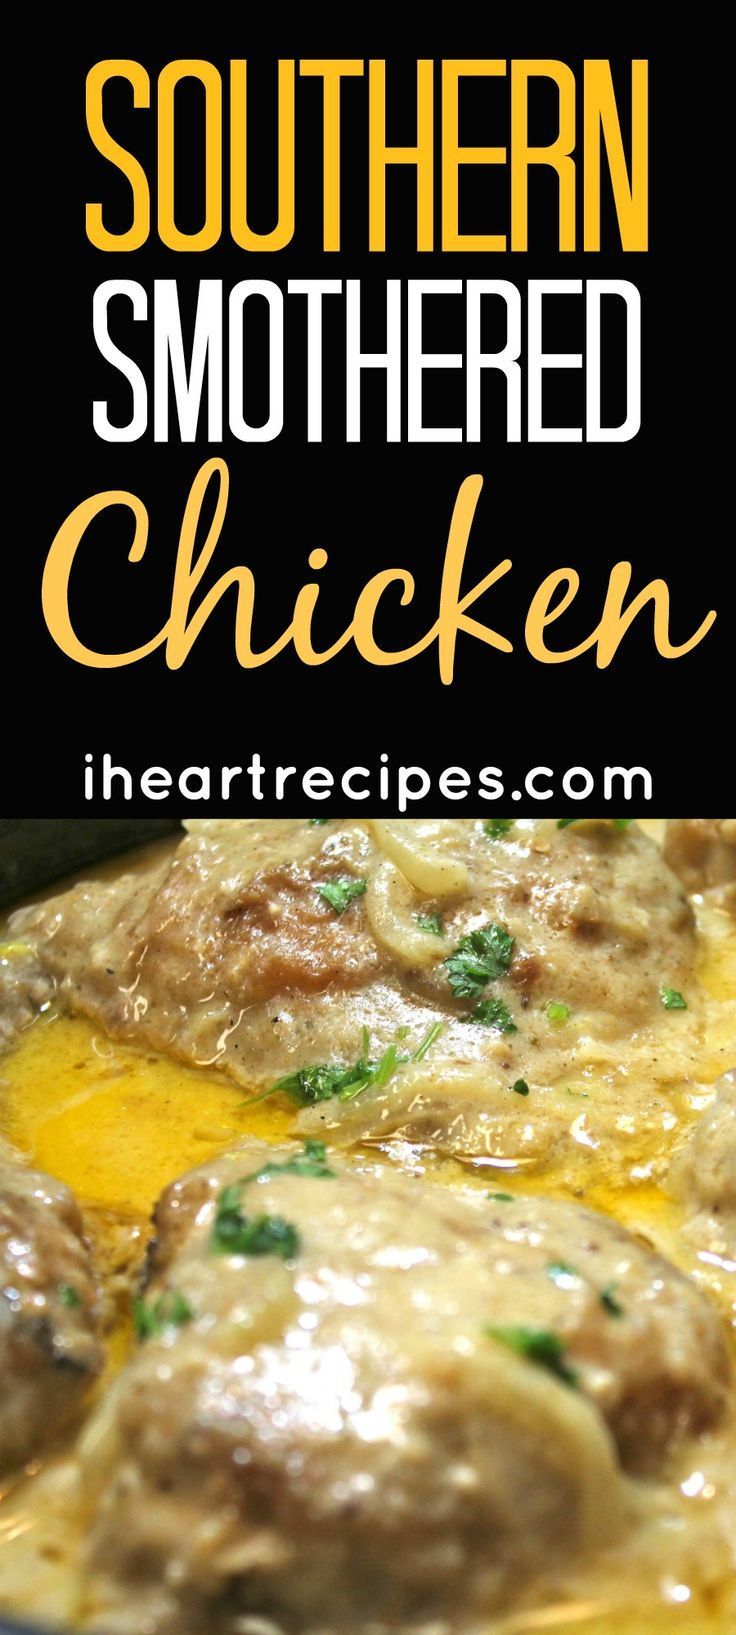 Southern Smothered Chicken | I Heart Recipes